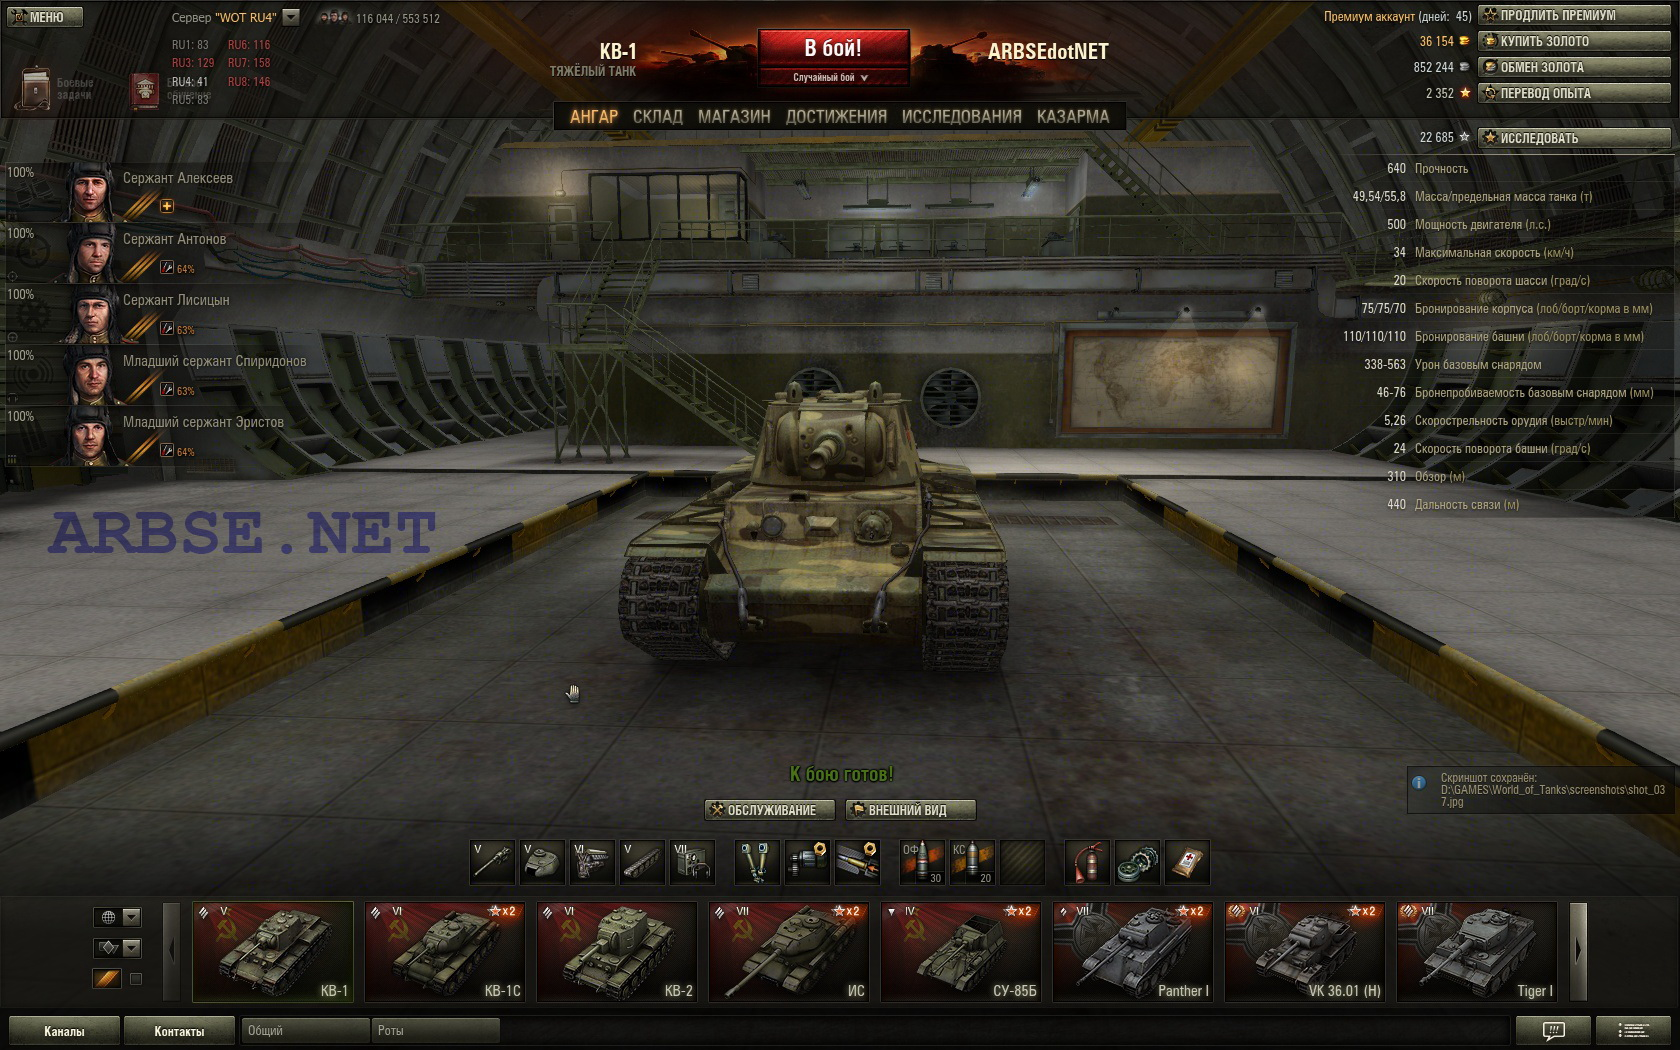 World of tanks настройка графики, бесплатные ...: pictures11.ru/world-of-tanks-nastrojka-grafiki.html